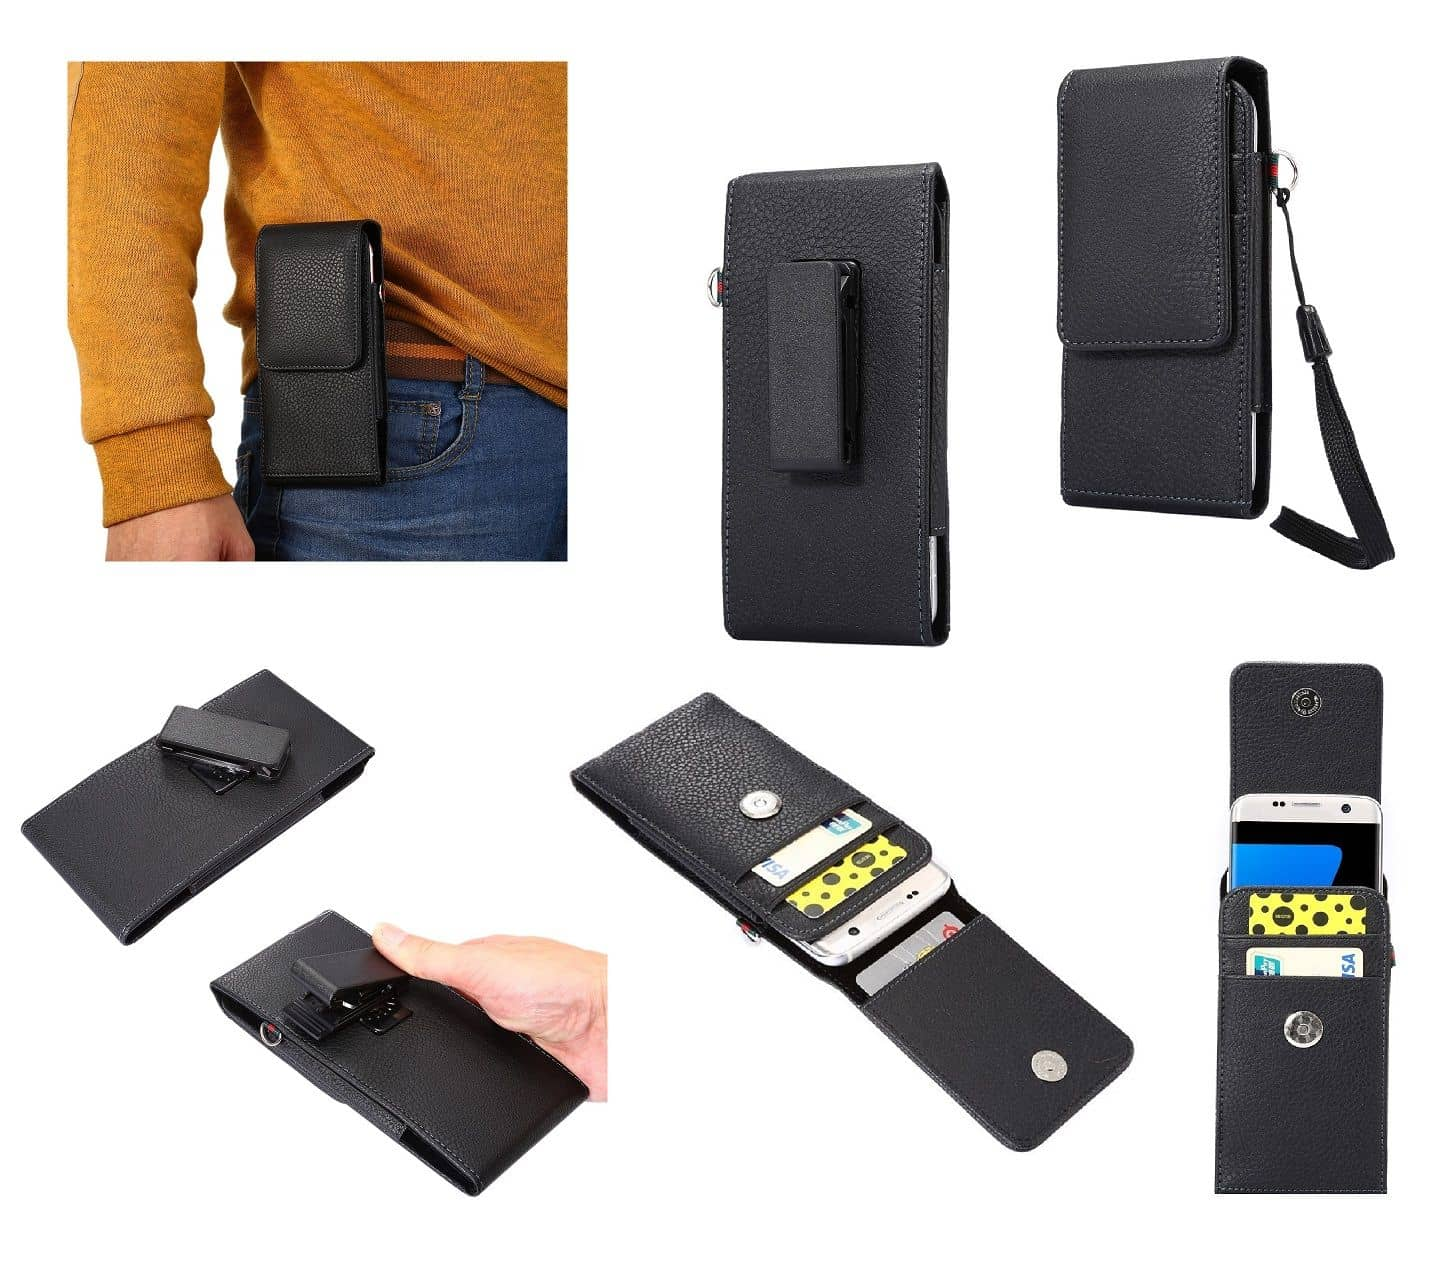 Magnetic leather Holster Card Holder Case belt Clip Rotary 360 for ZTE Axon 10s Pro (2020) - Black